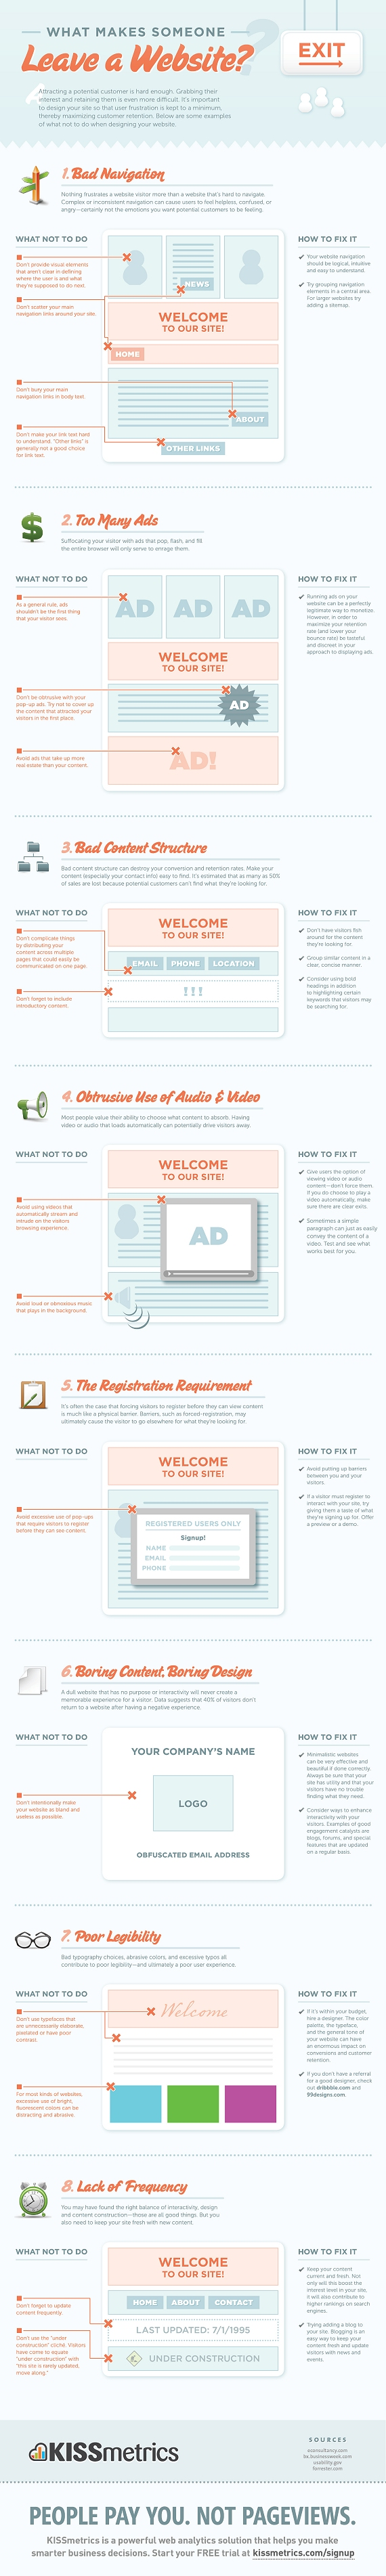 What-Makes-Someone-Leave-A-Website-infographic